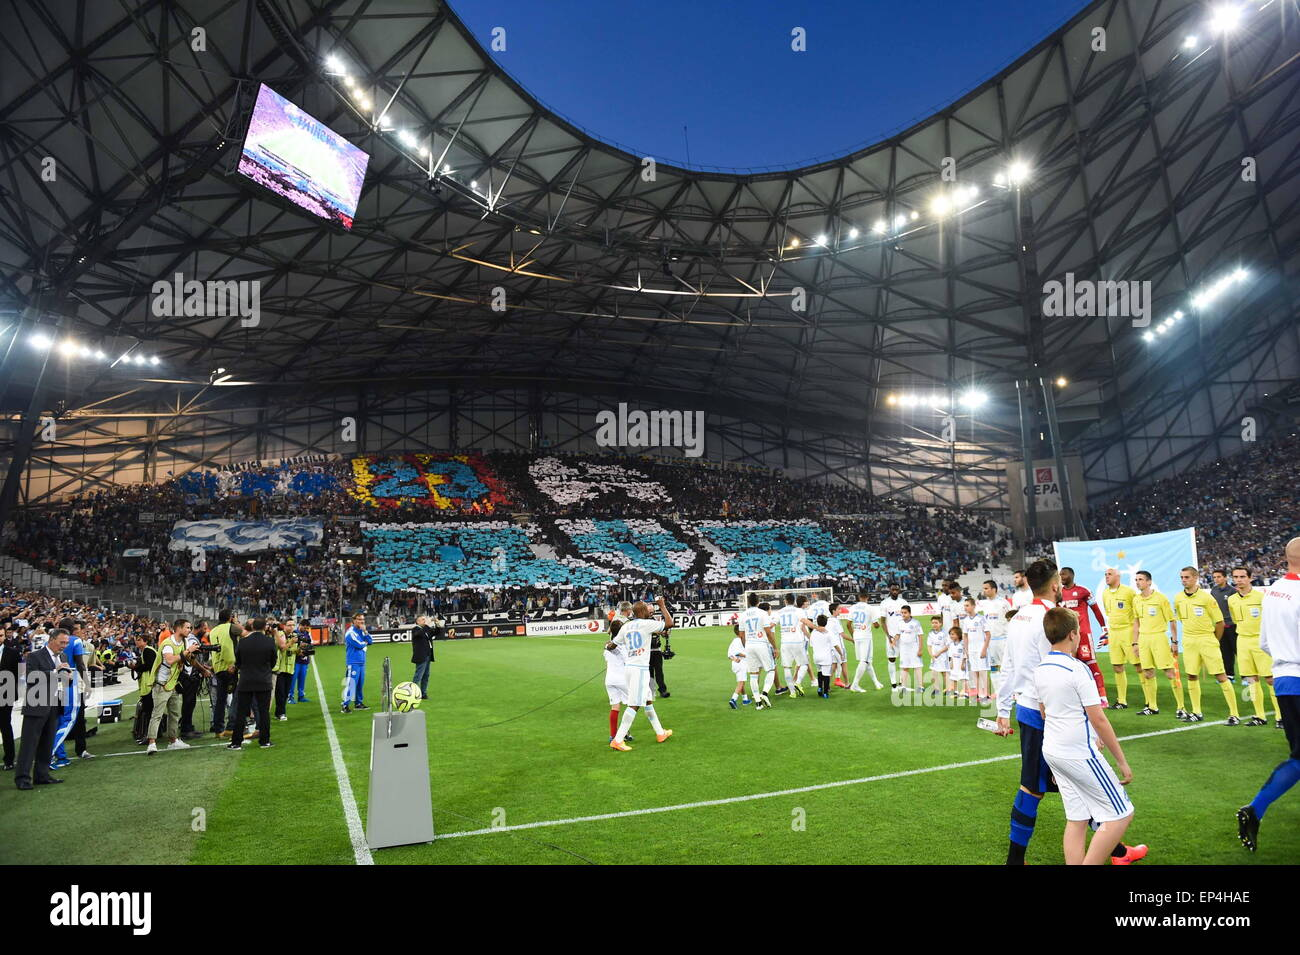 Stade Velodrome - 10.05.2015 - Marseille / Monaco - 36eme journee de Ligue 1.Photo : Alexandre Dimou / Icon Sport - Stock Image